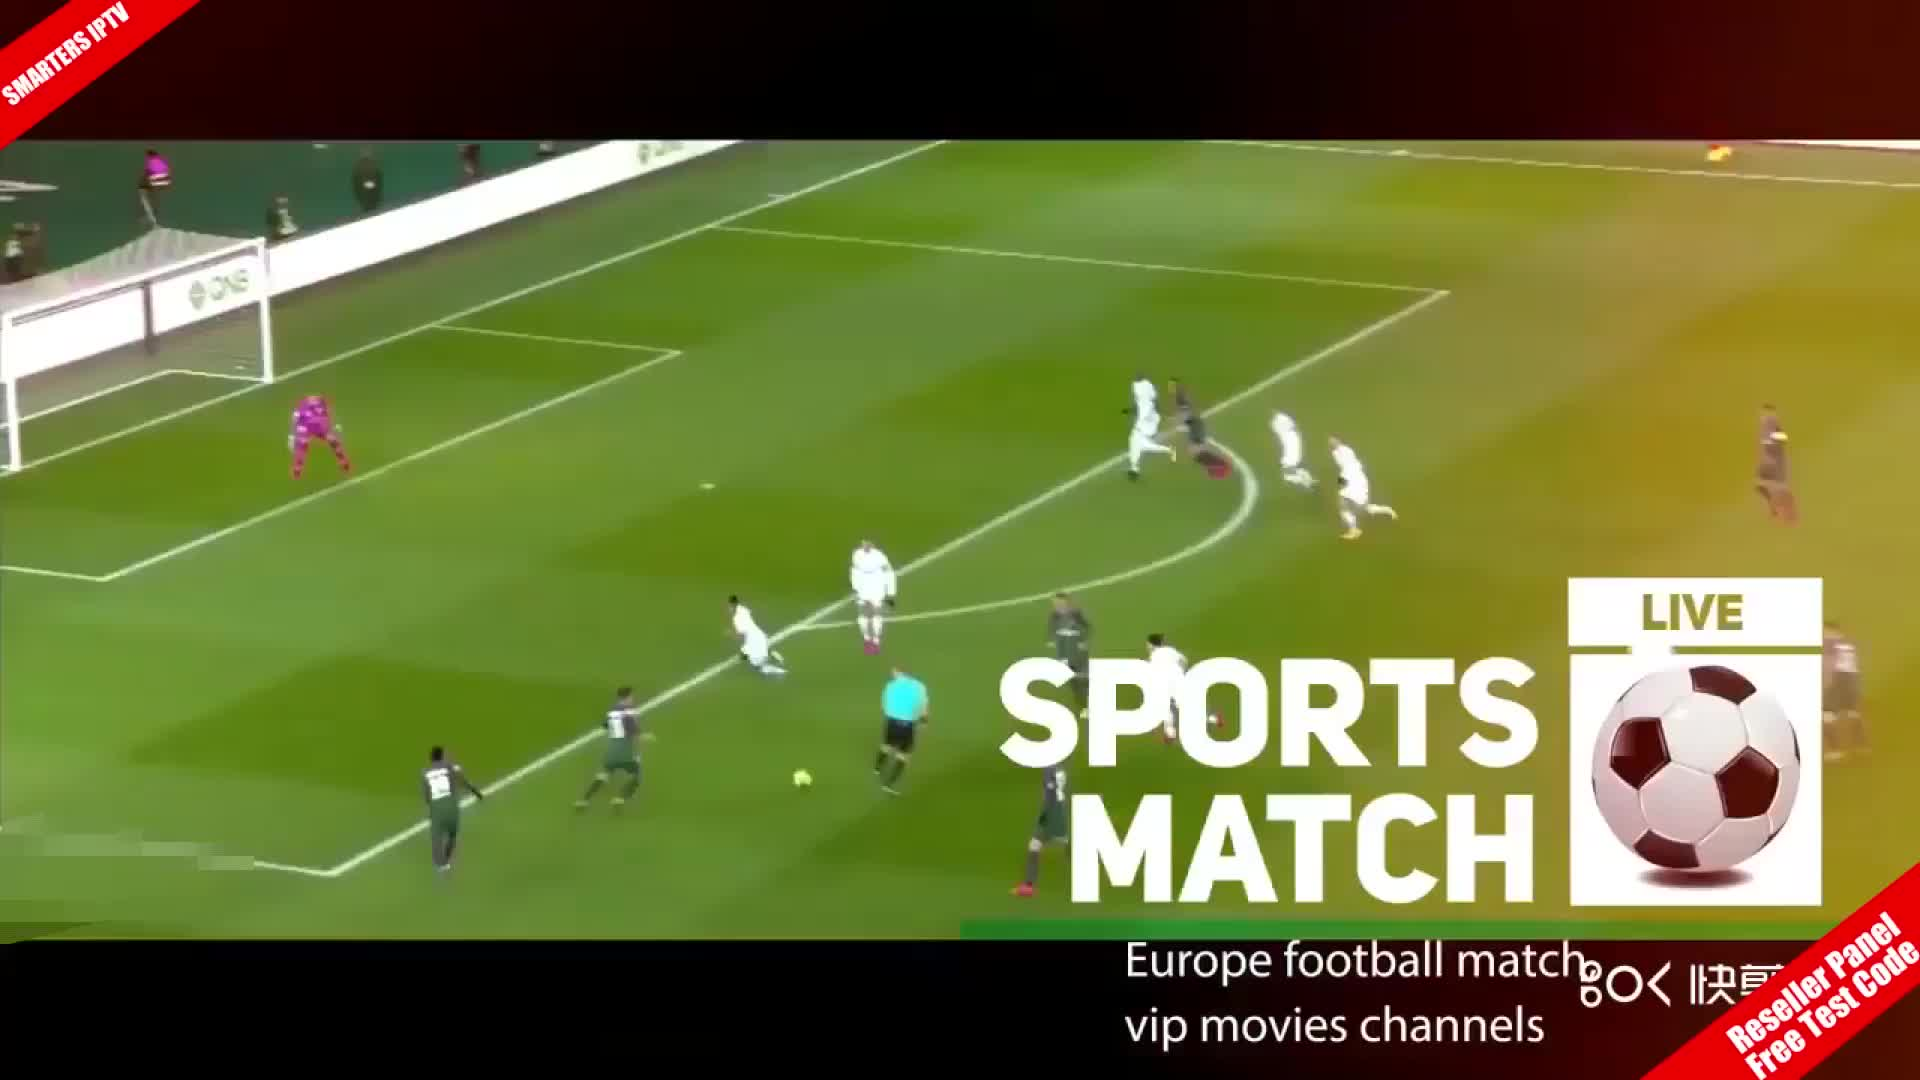 iptv M3U 30 Countries 3900 live and vod channels no freeze iptv M3U with free trial account for testing iptv france